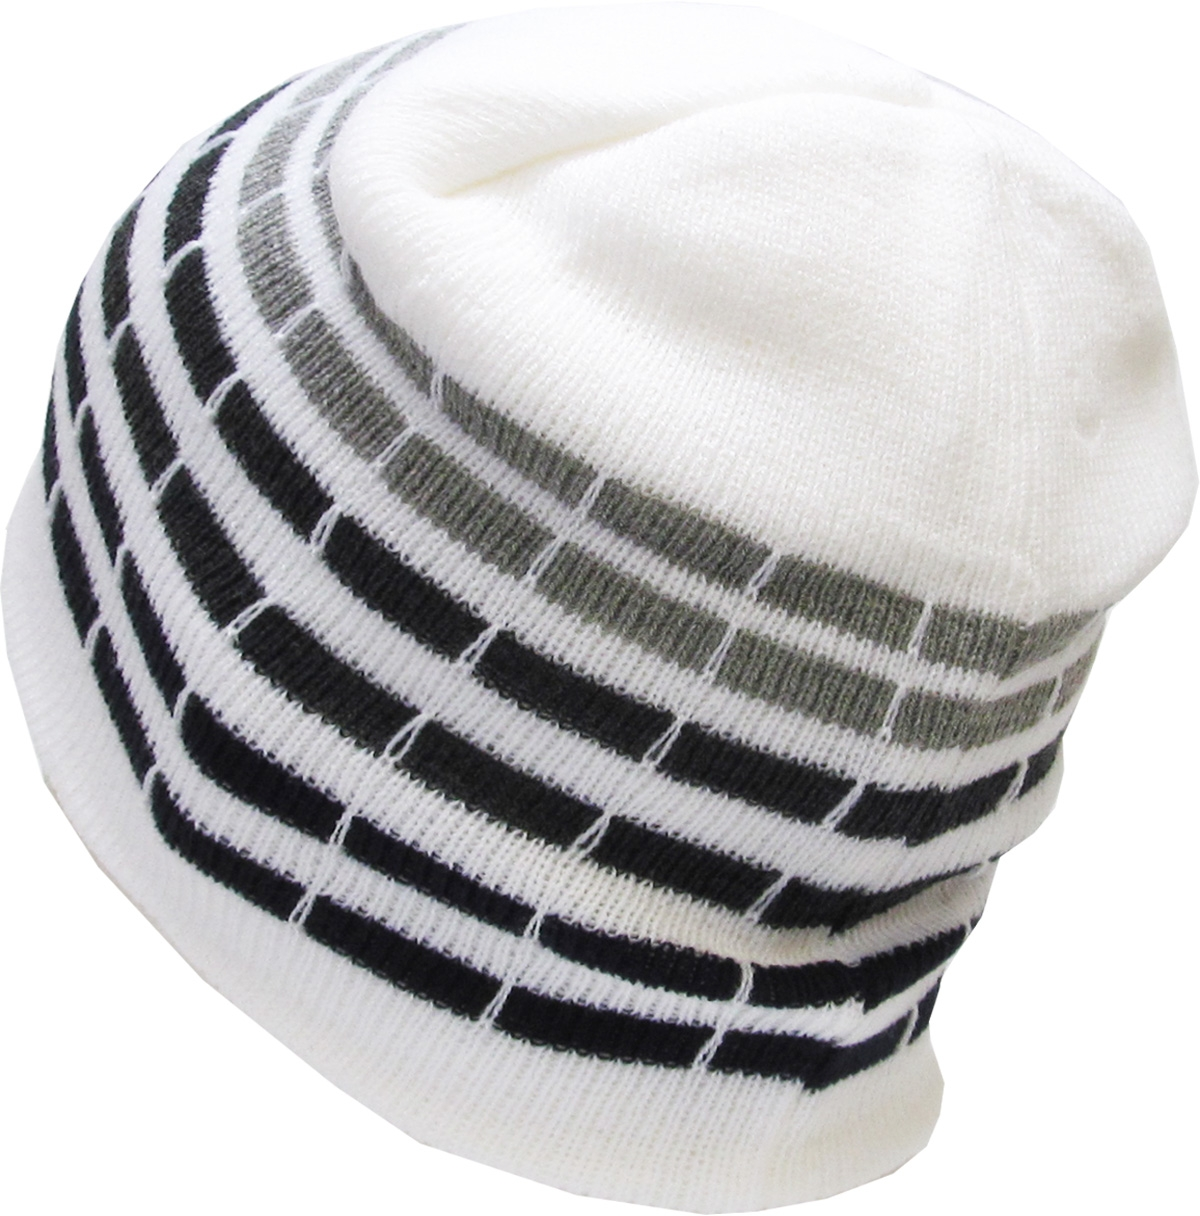 429e252444c63 KBETHOS - Black Dotted Stripes Short Beanie Skull Cap Solid Color Men Women  Winter Ski Hat - Walmart.com